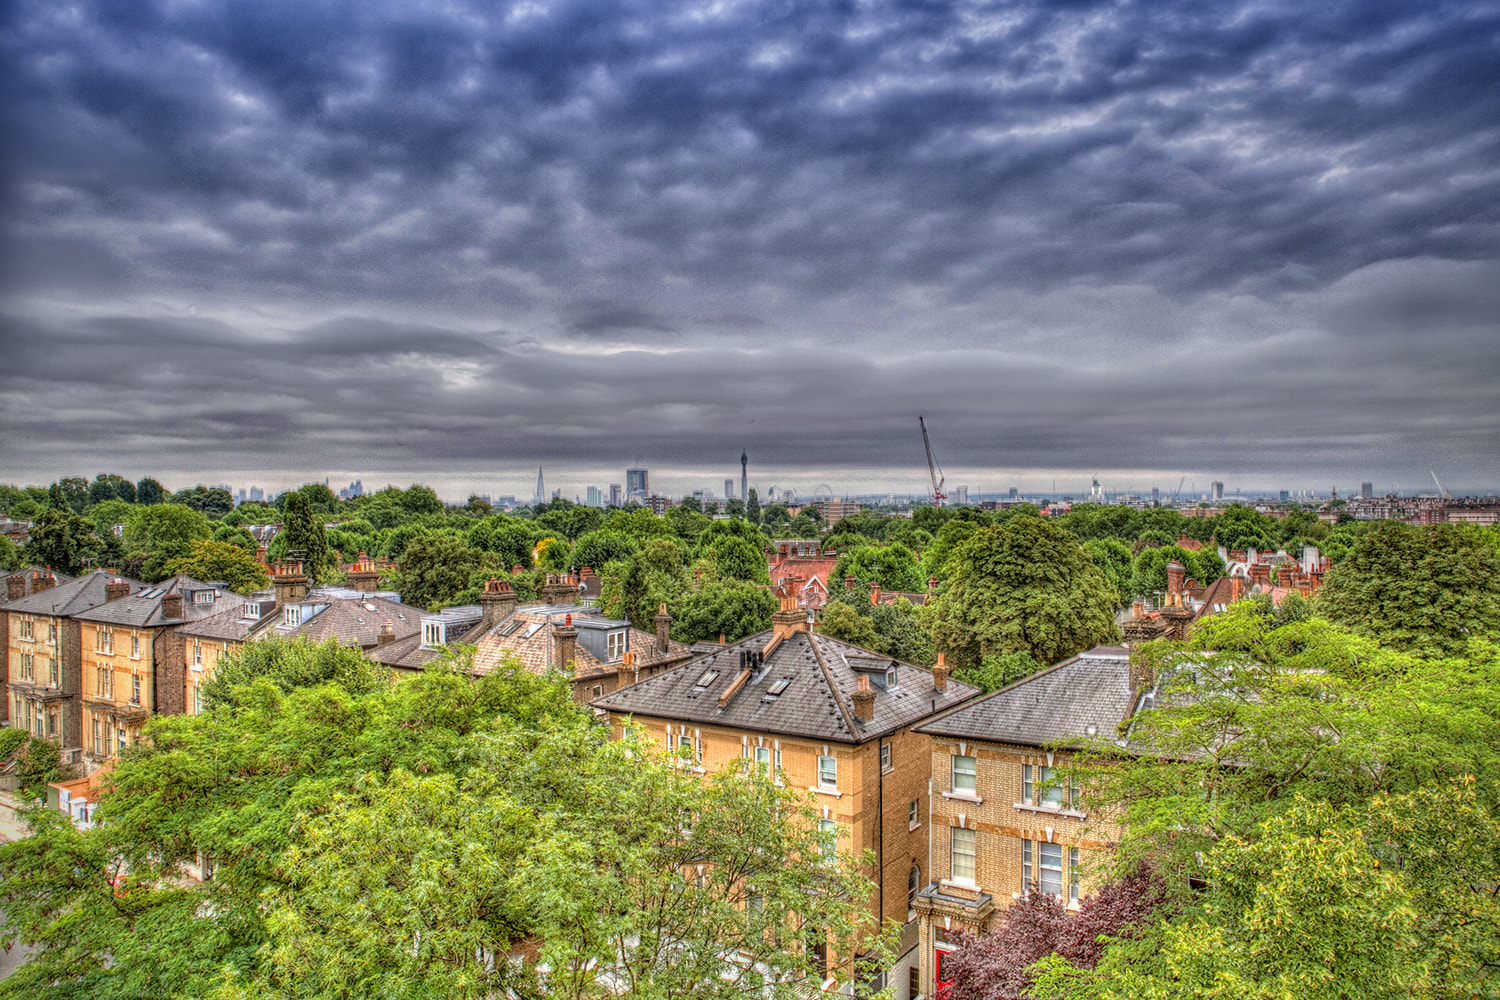 Photograph View across London by Obi Nwokedi on 500px